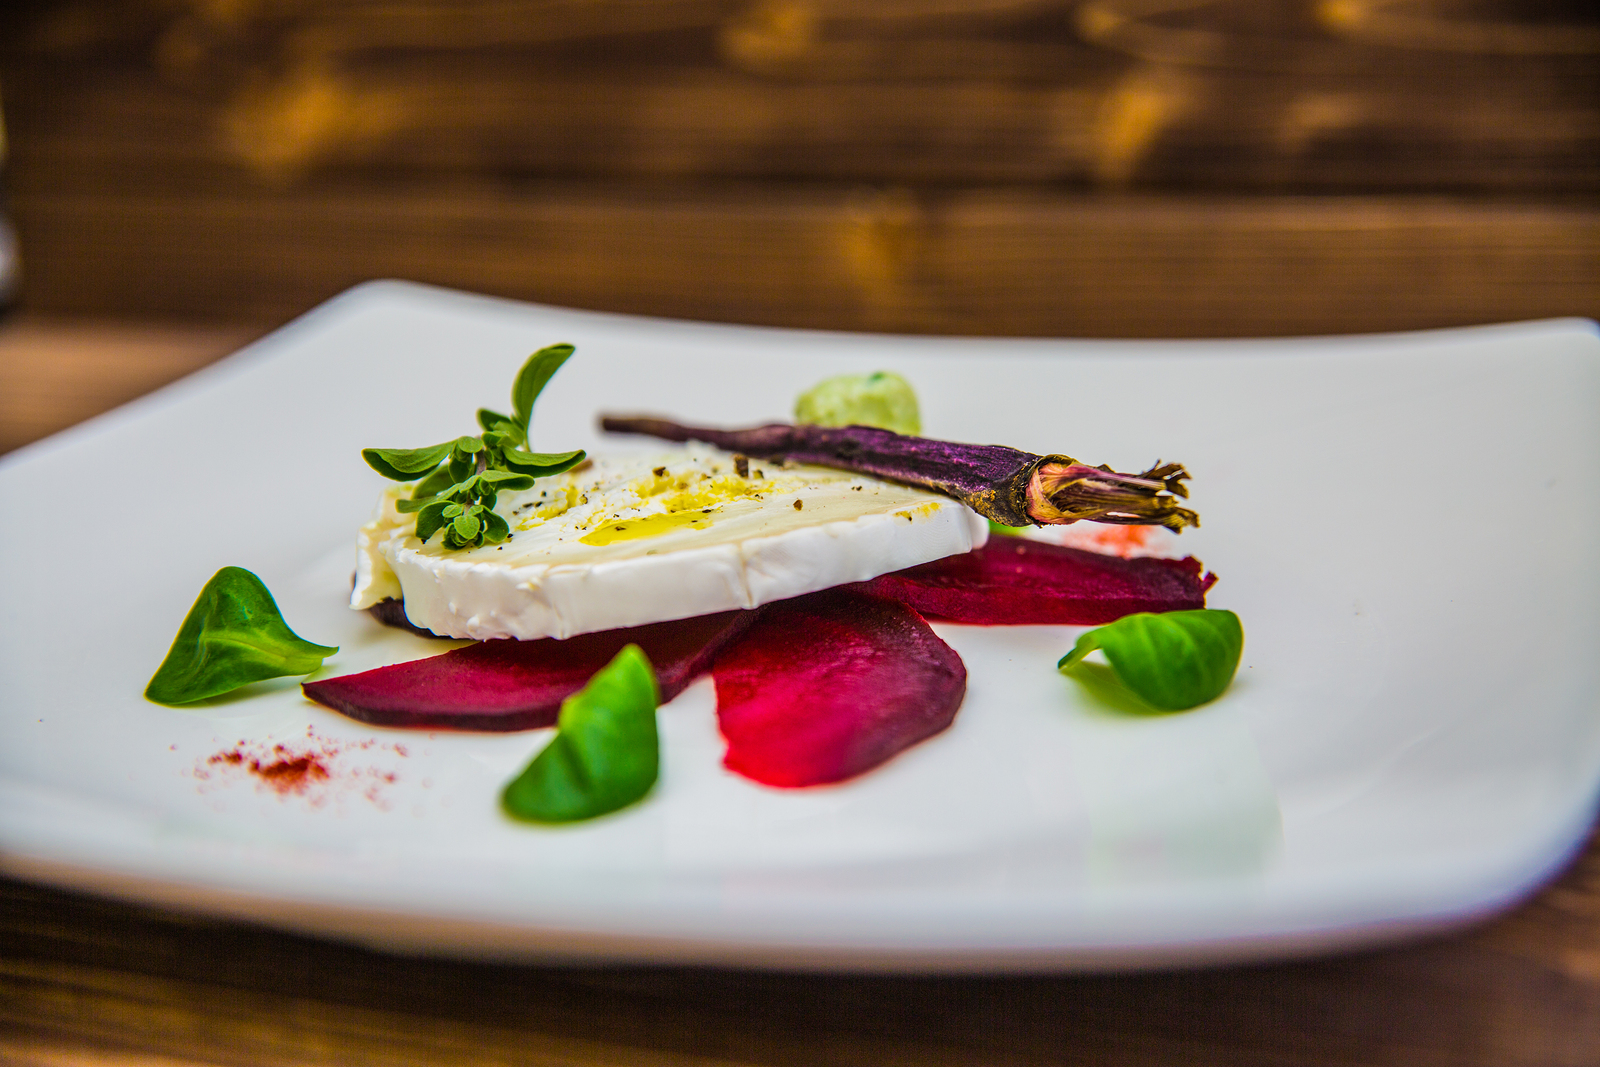 Goats cheese with beets and dehidrated h